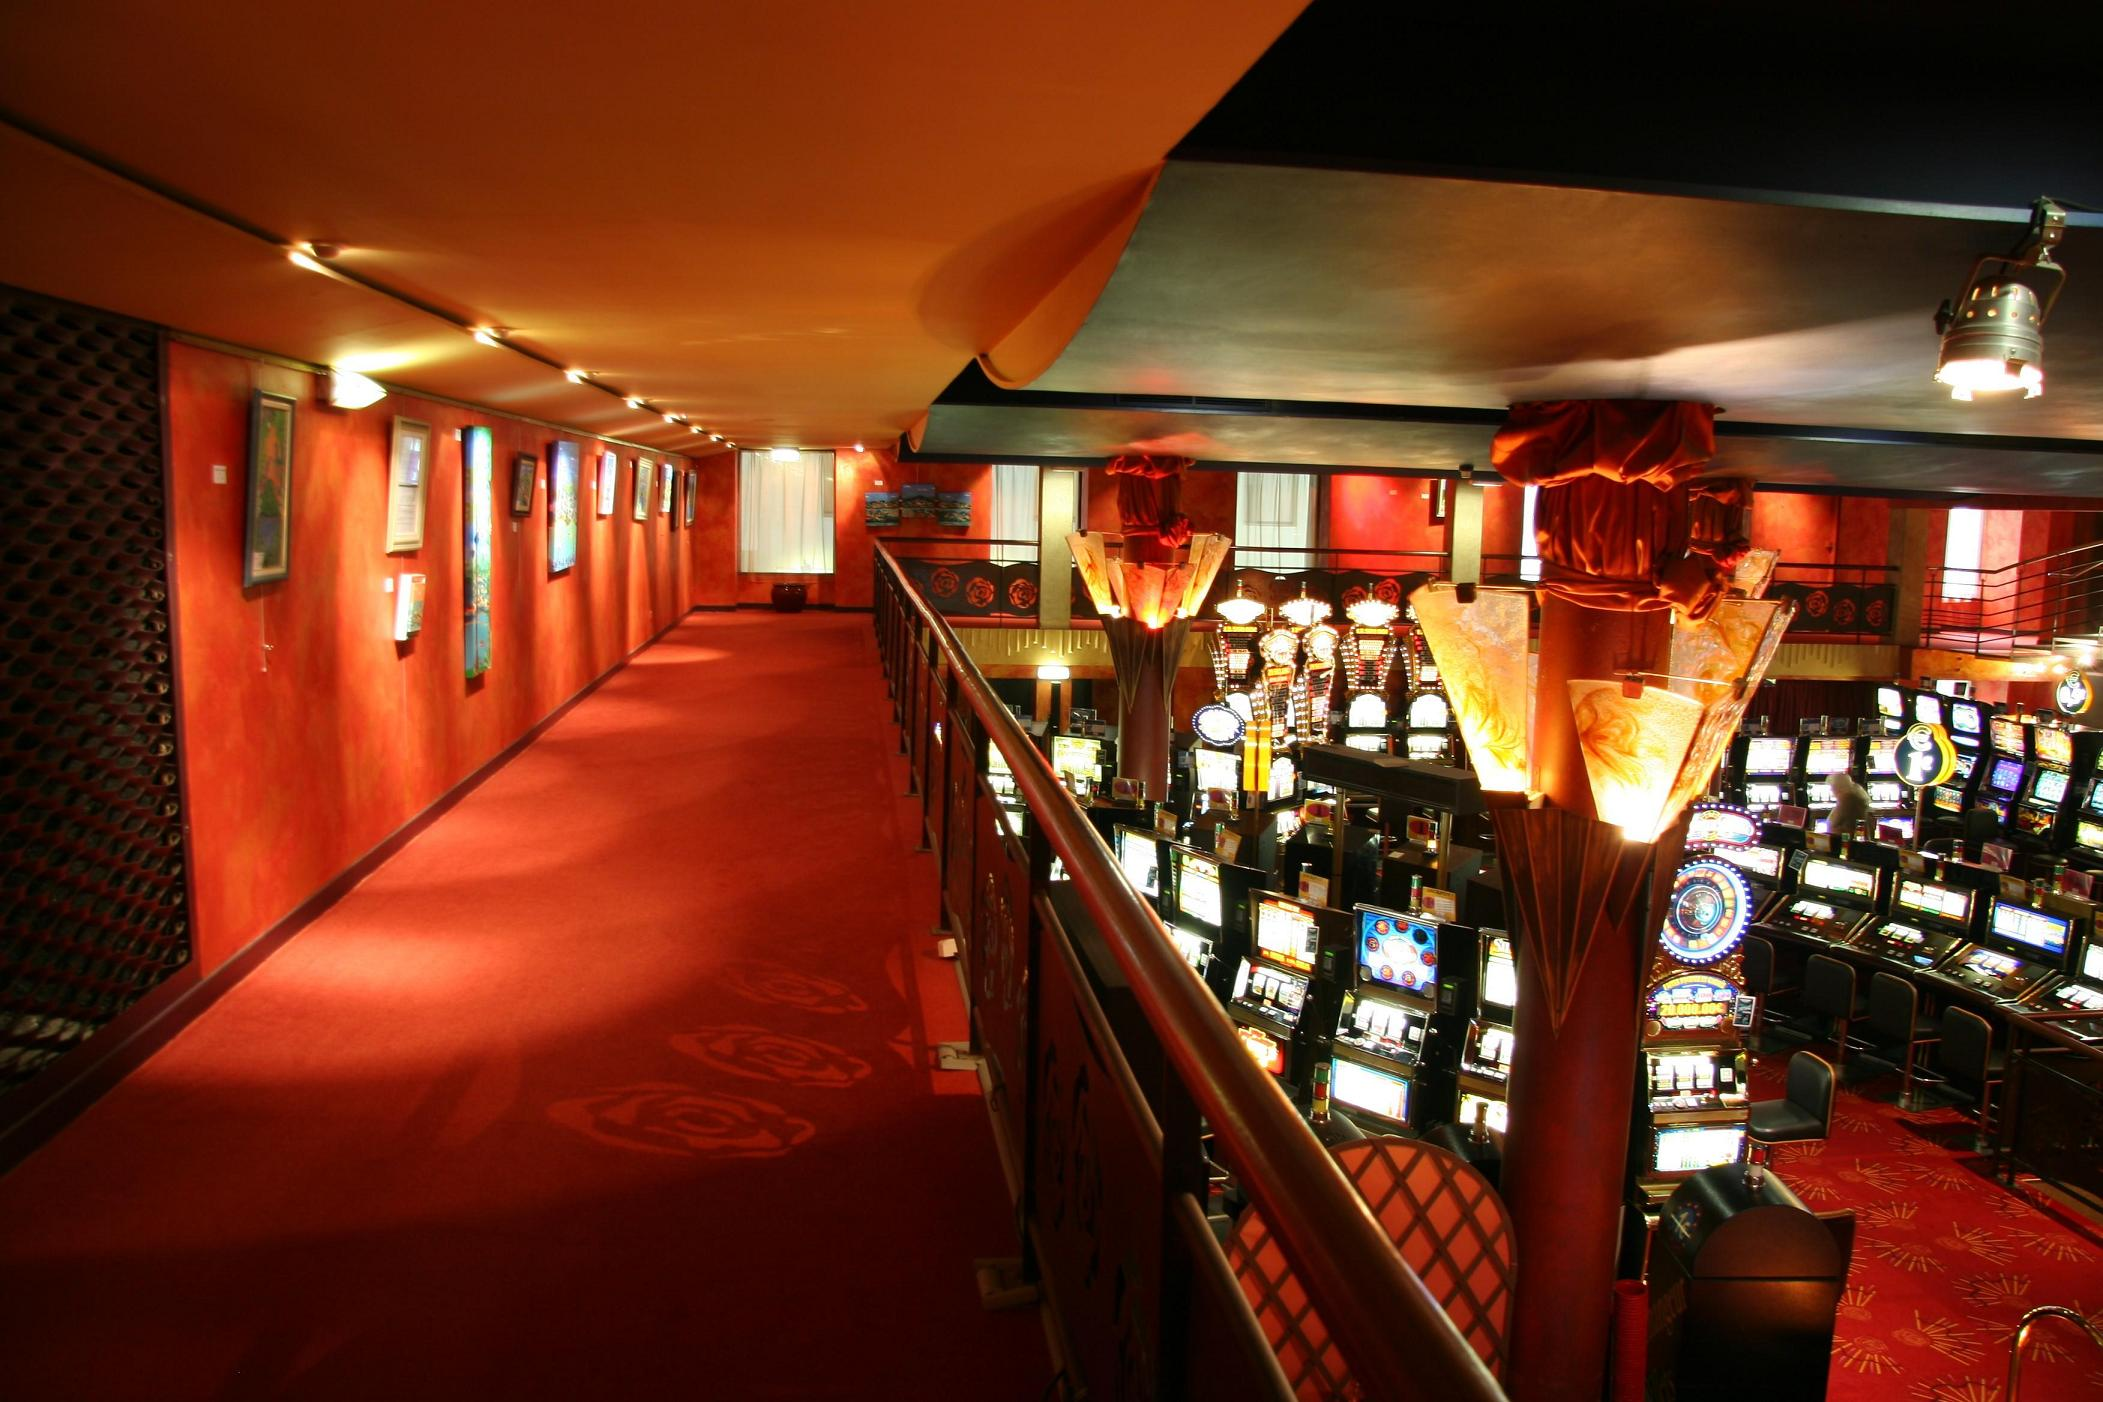 imagescasino-barriere-2.jpg